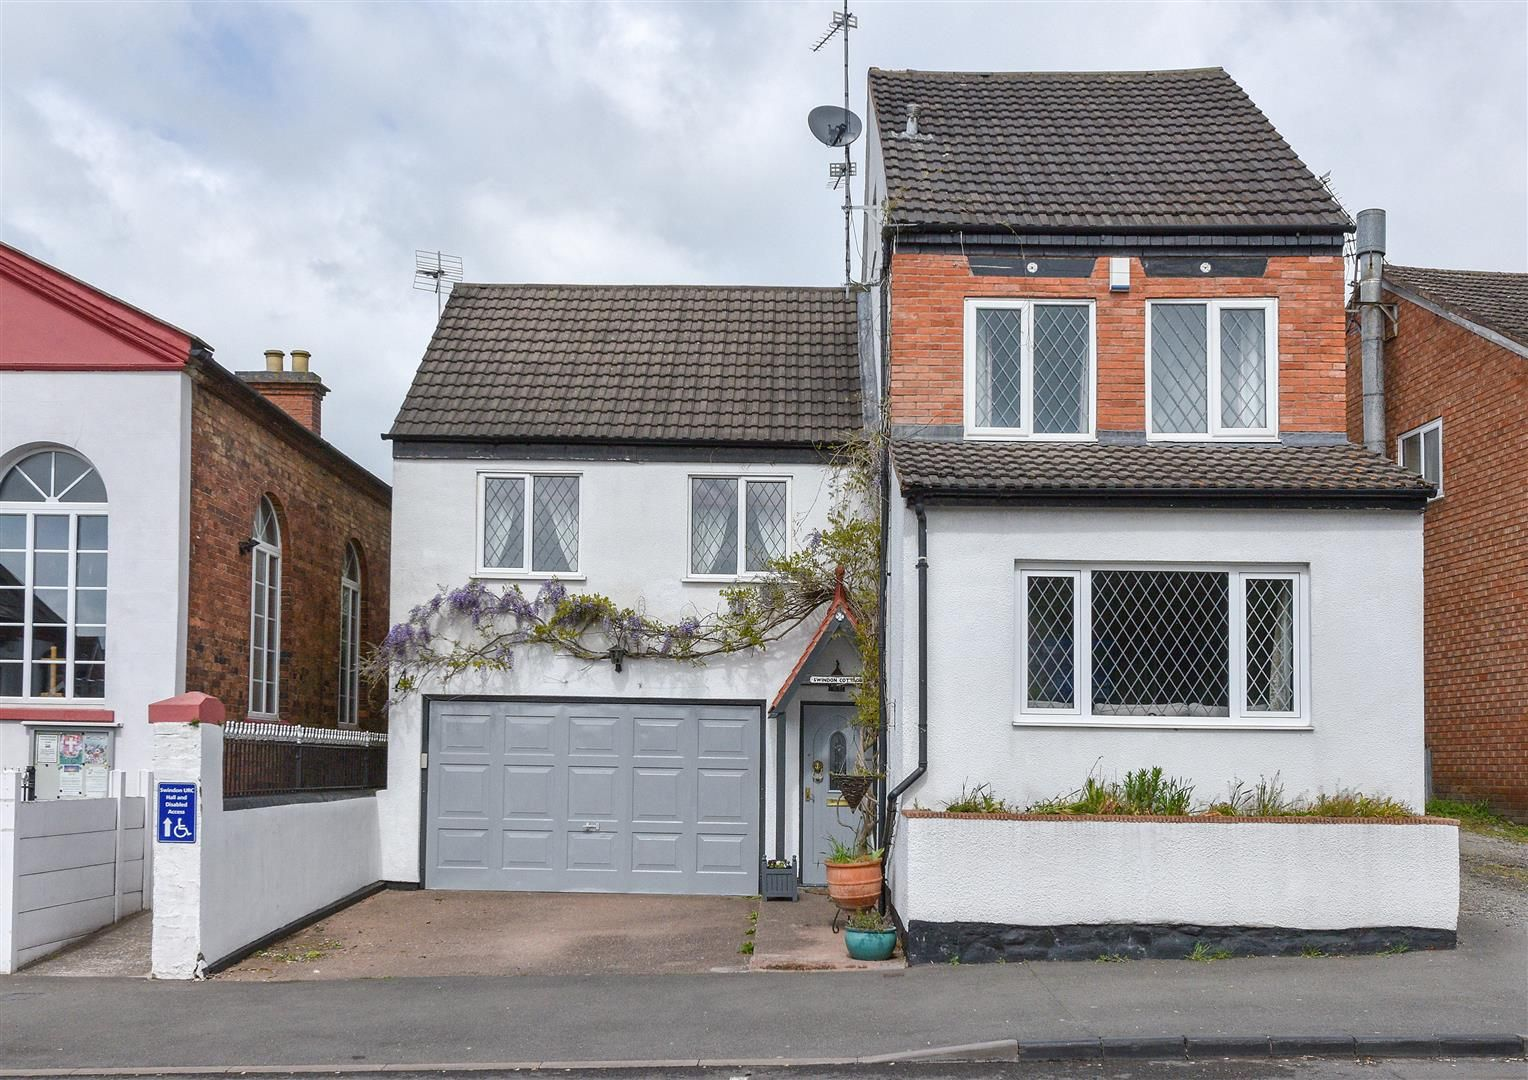 4 bed detached for sale in Swindon, DY3